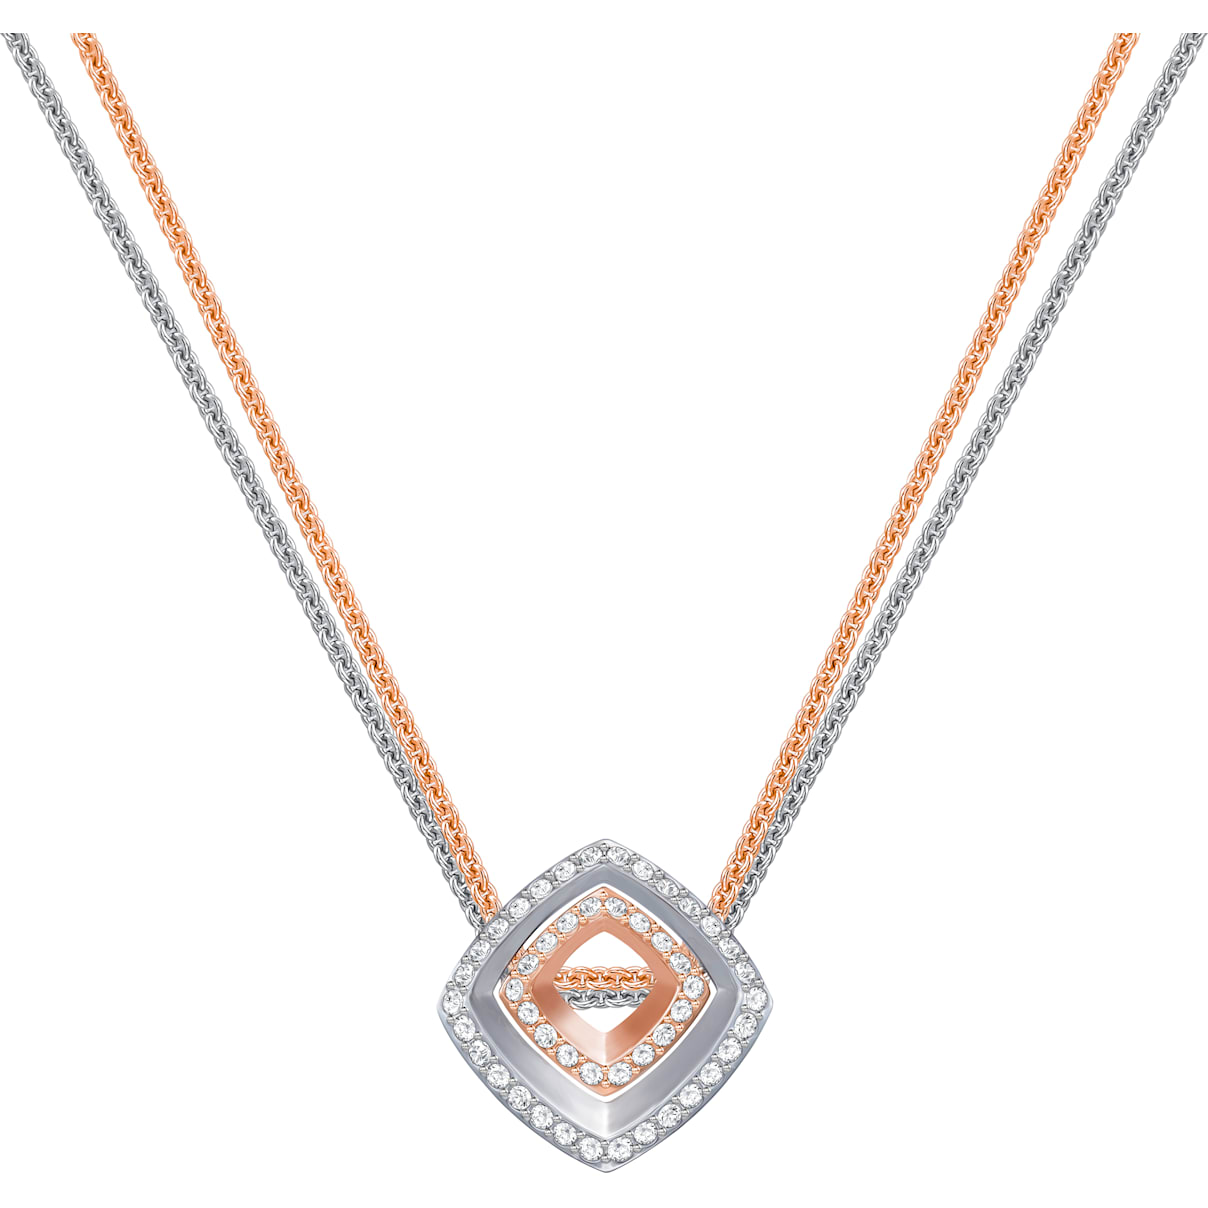 Swarovski Lovesome Square Pendant, White, Mixed plating